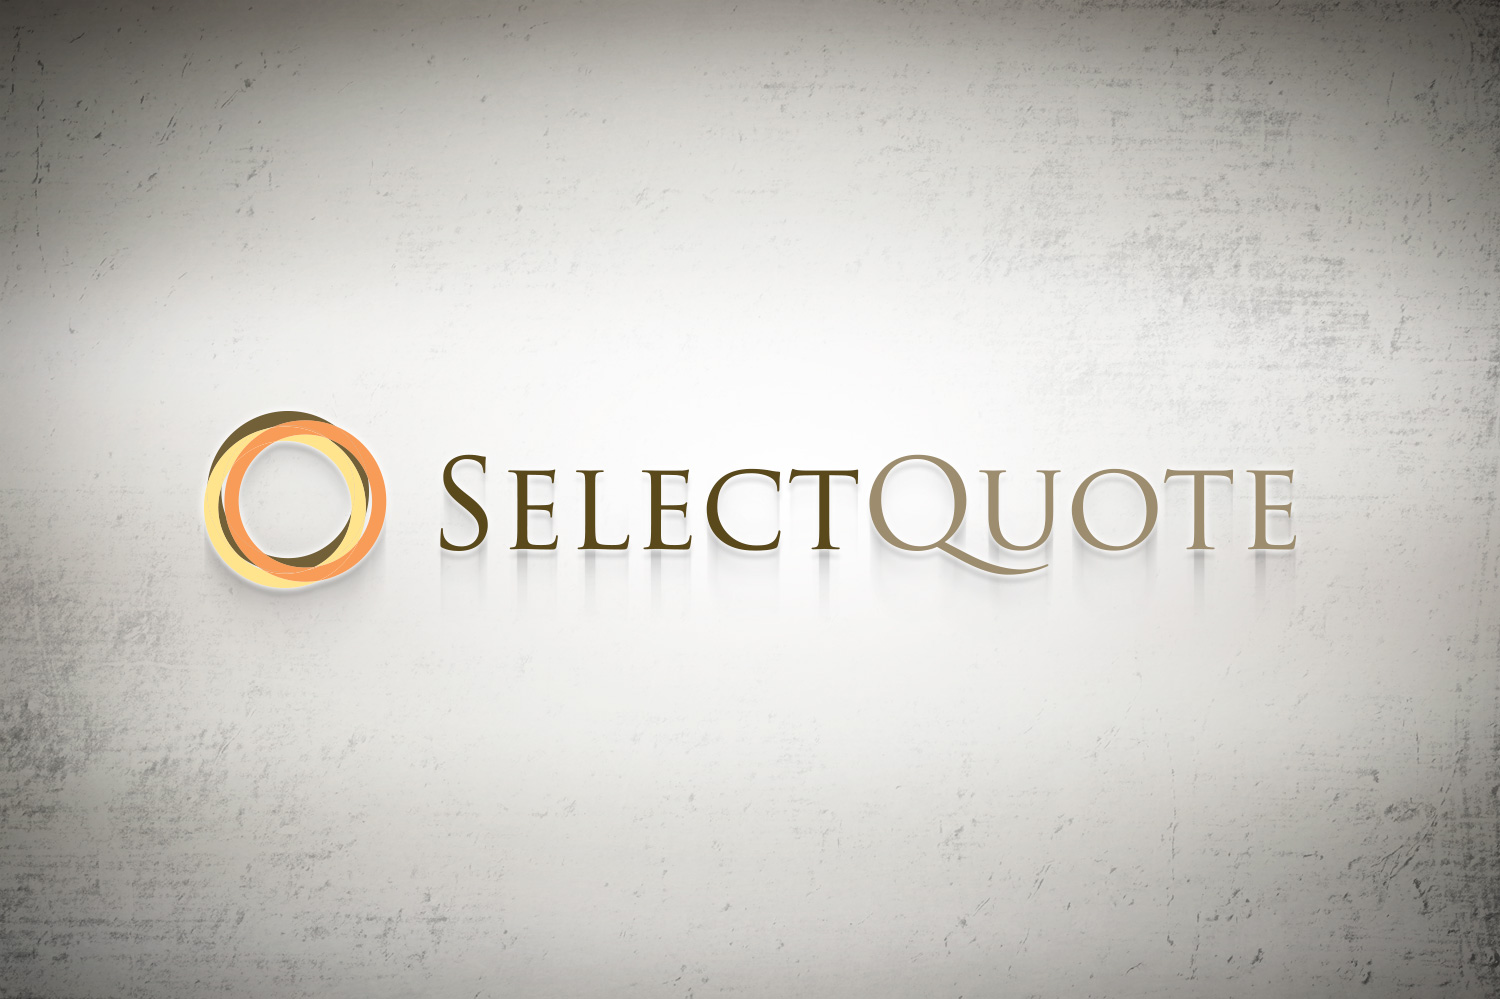 Select Quote Selectquote  S&d Marketing  Advertising